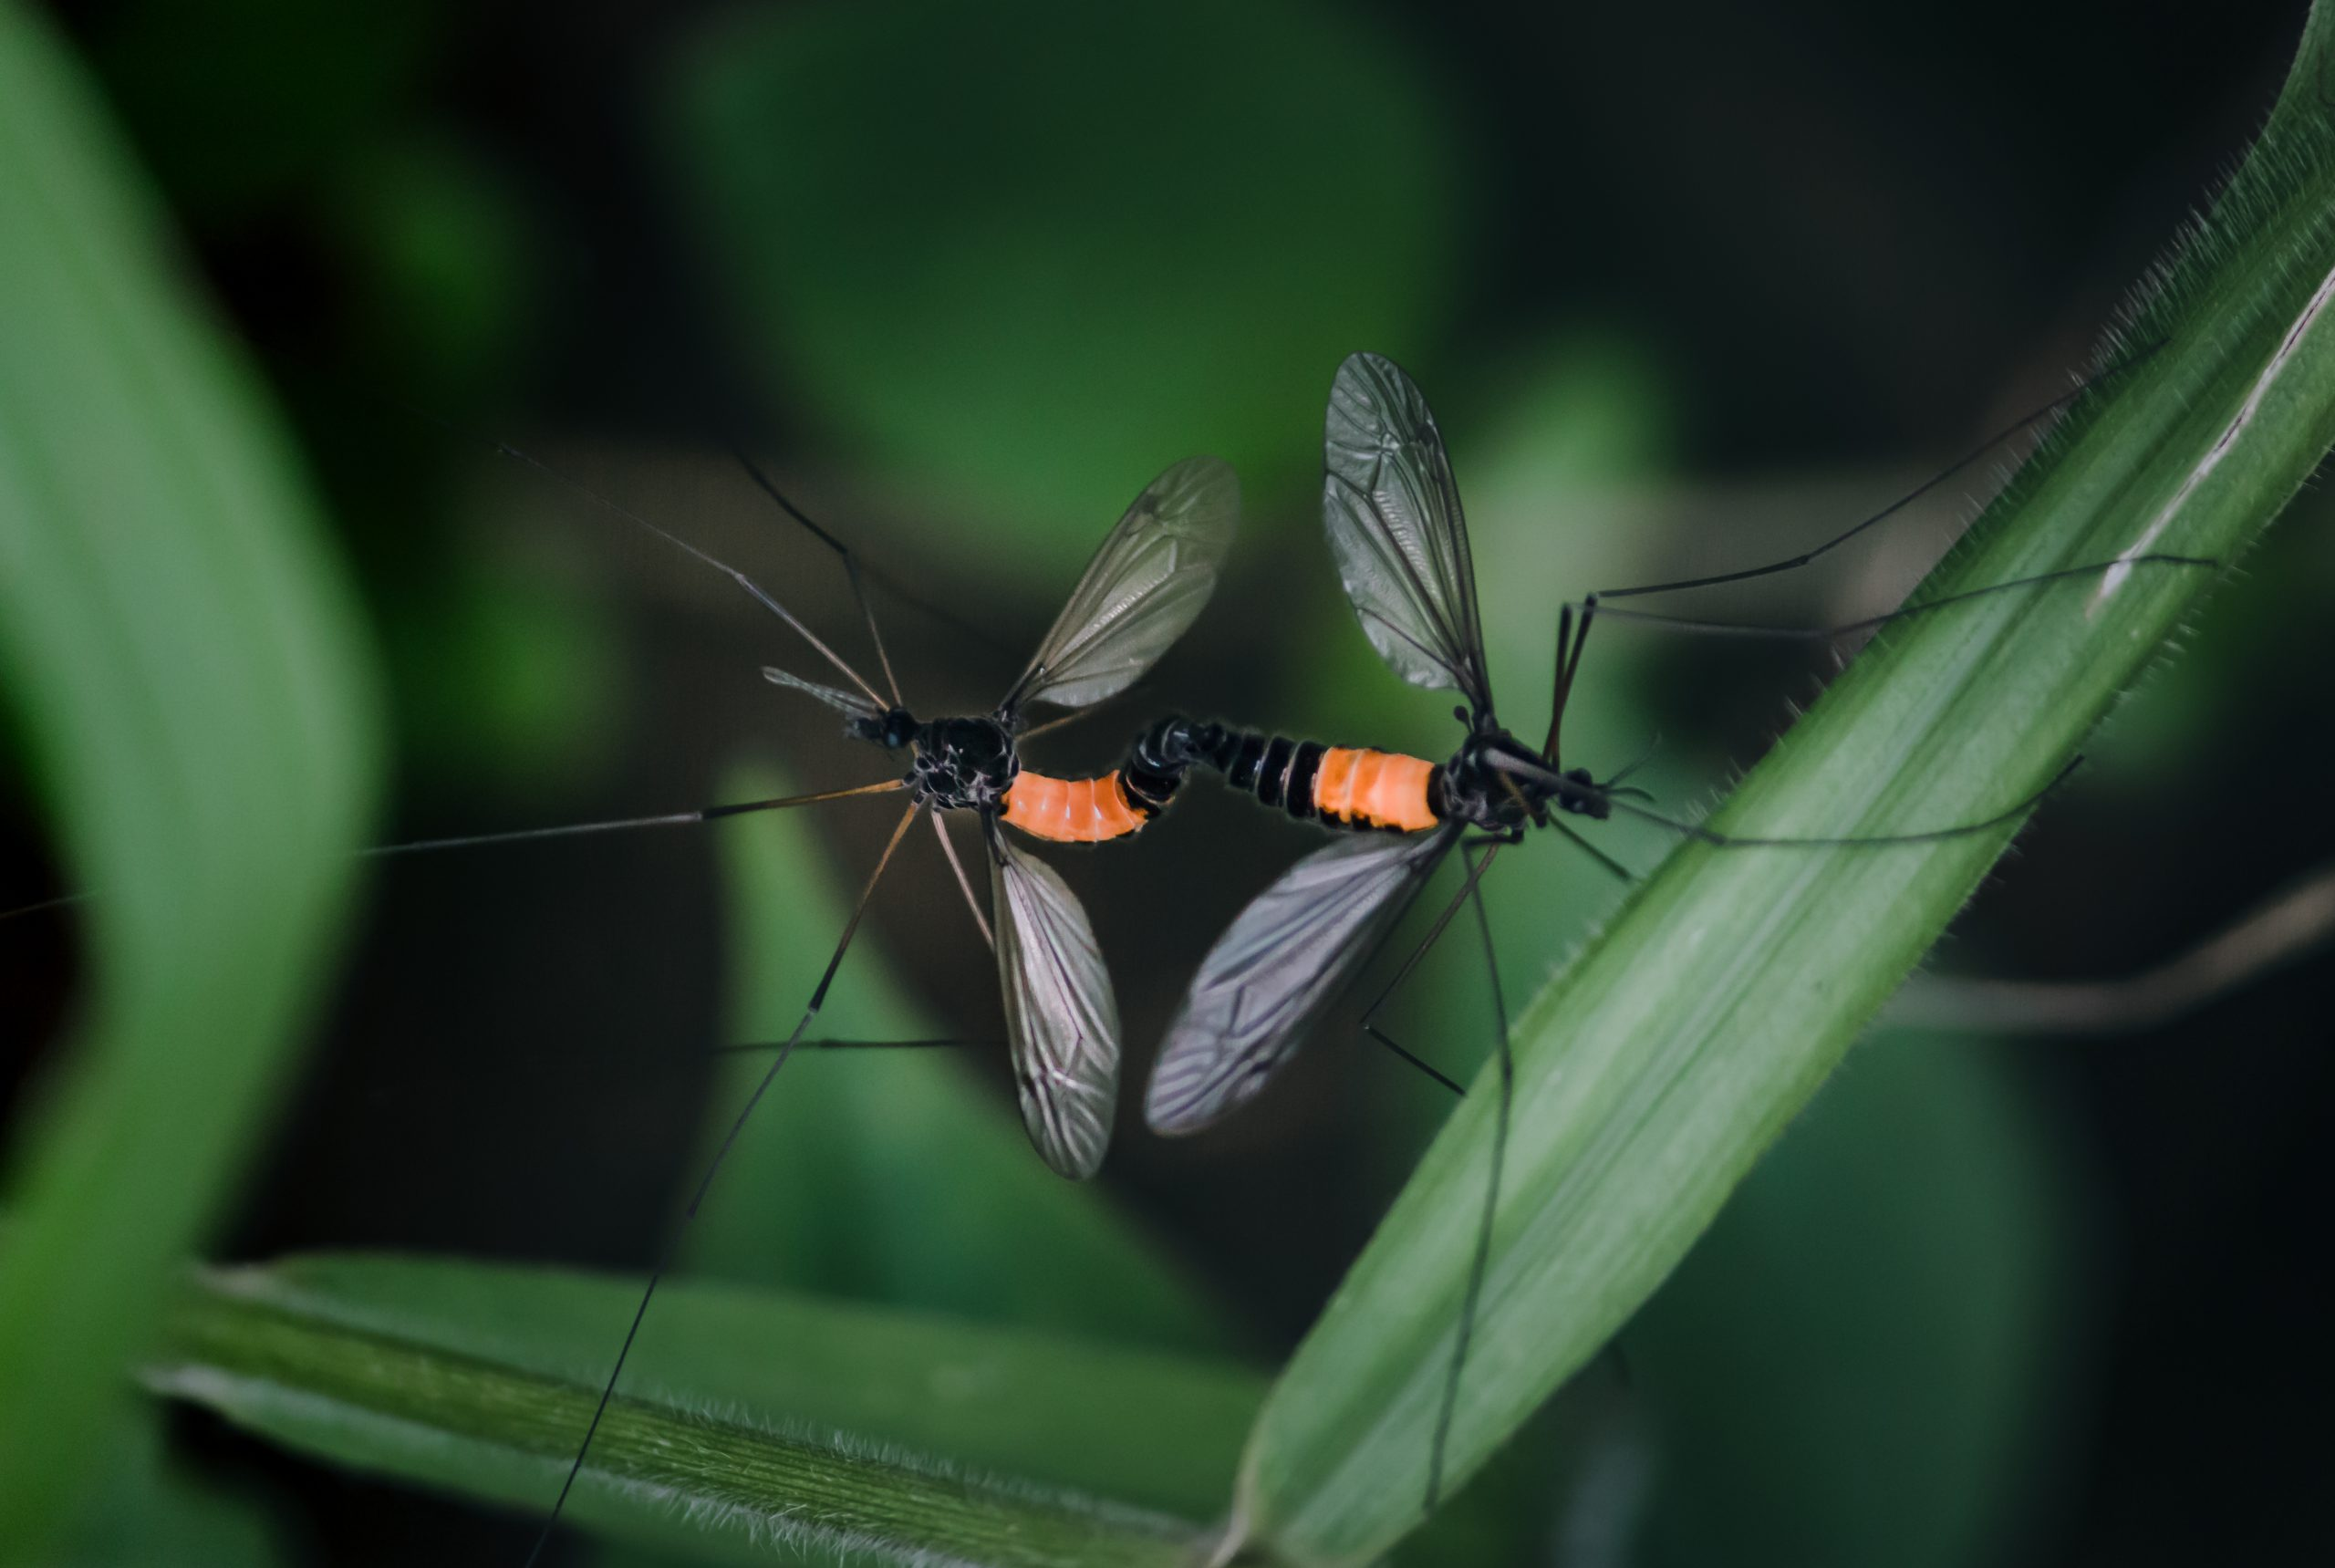 Two insects mating